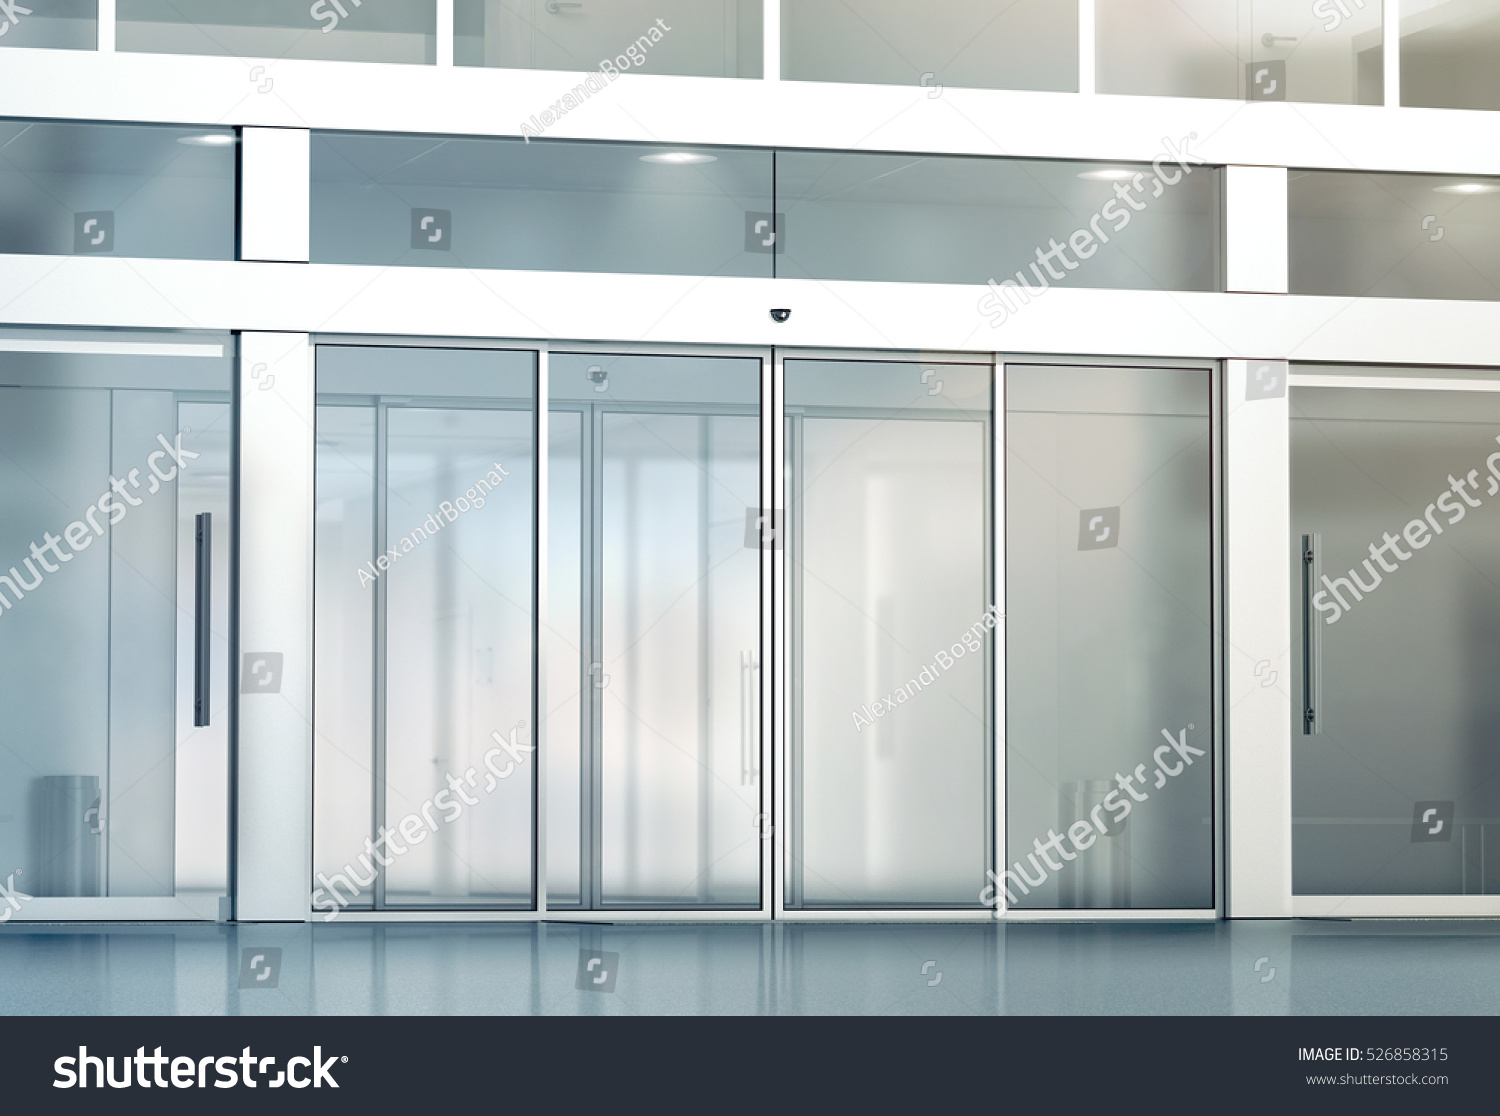 1116 #3F505C Glass Doors Entrance Mockup 3d Rendering. Commercial Automatic Entry  picture/photo Commercial Building Entry Doors 45391500